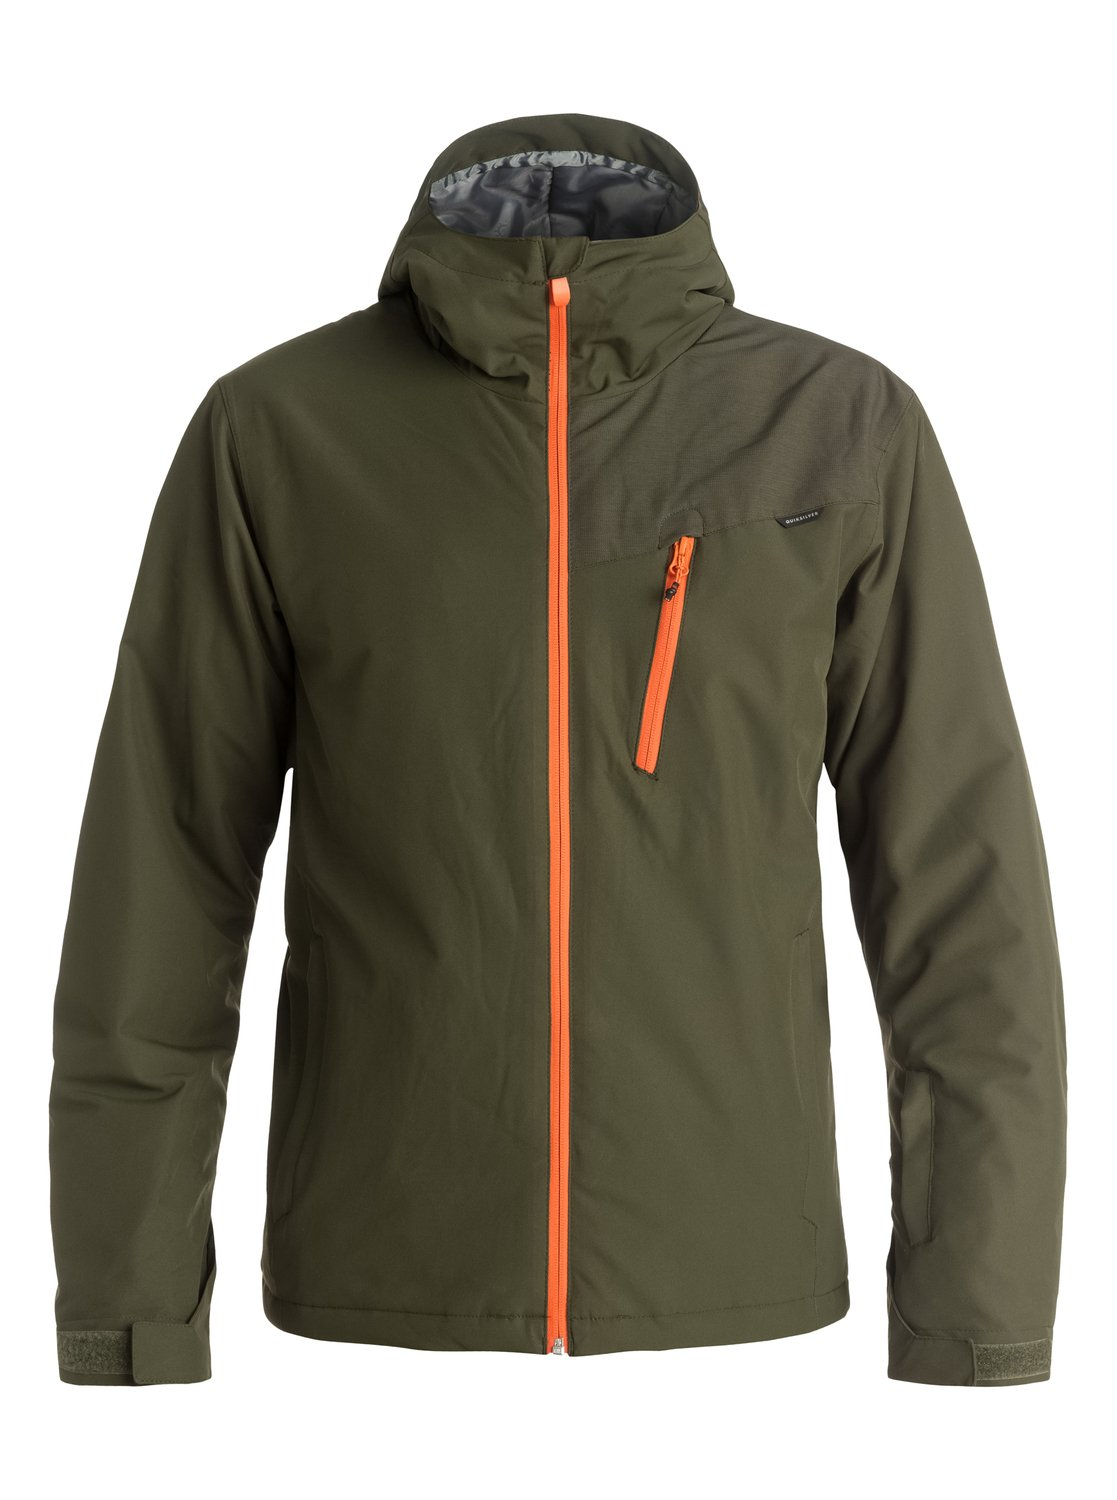 Сноубордическая куртка Mission PlusThe Mission Plus snow jacket for men features our regular fit, and most relaxed cut, delivering maximum comfort and freedom of movement. Great for layering it has been constructed with 10K Quiksilver DryFlight® technology waterproofing for dependable waterproof and breathable protection in a wide range of conditions. Critically-taped seams and a jacket to pant attachment system offer extra protection in the most exposed areas while Warmflight® level 2 insulation ensures low-bulk warmth.<br>